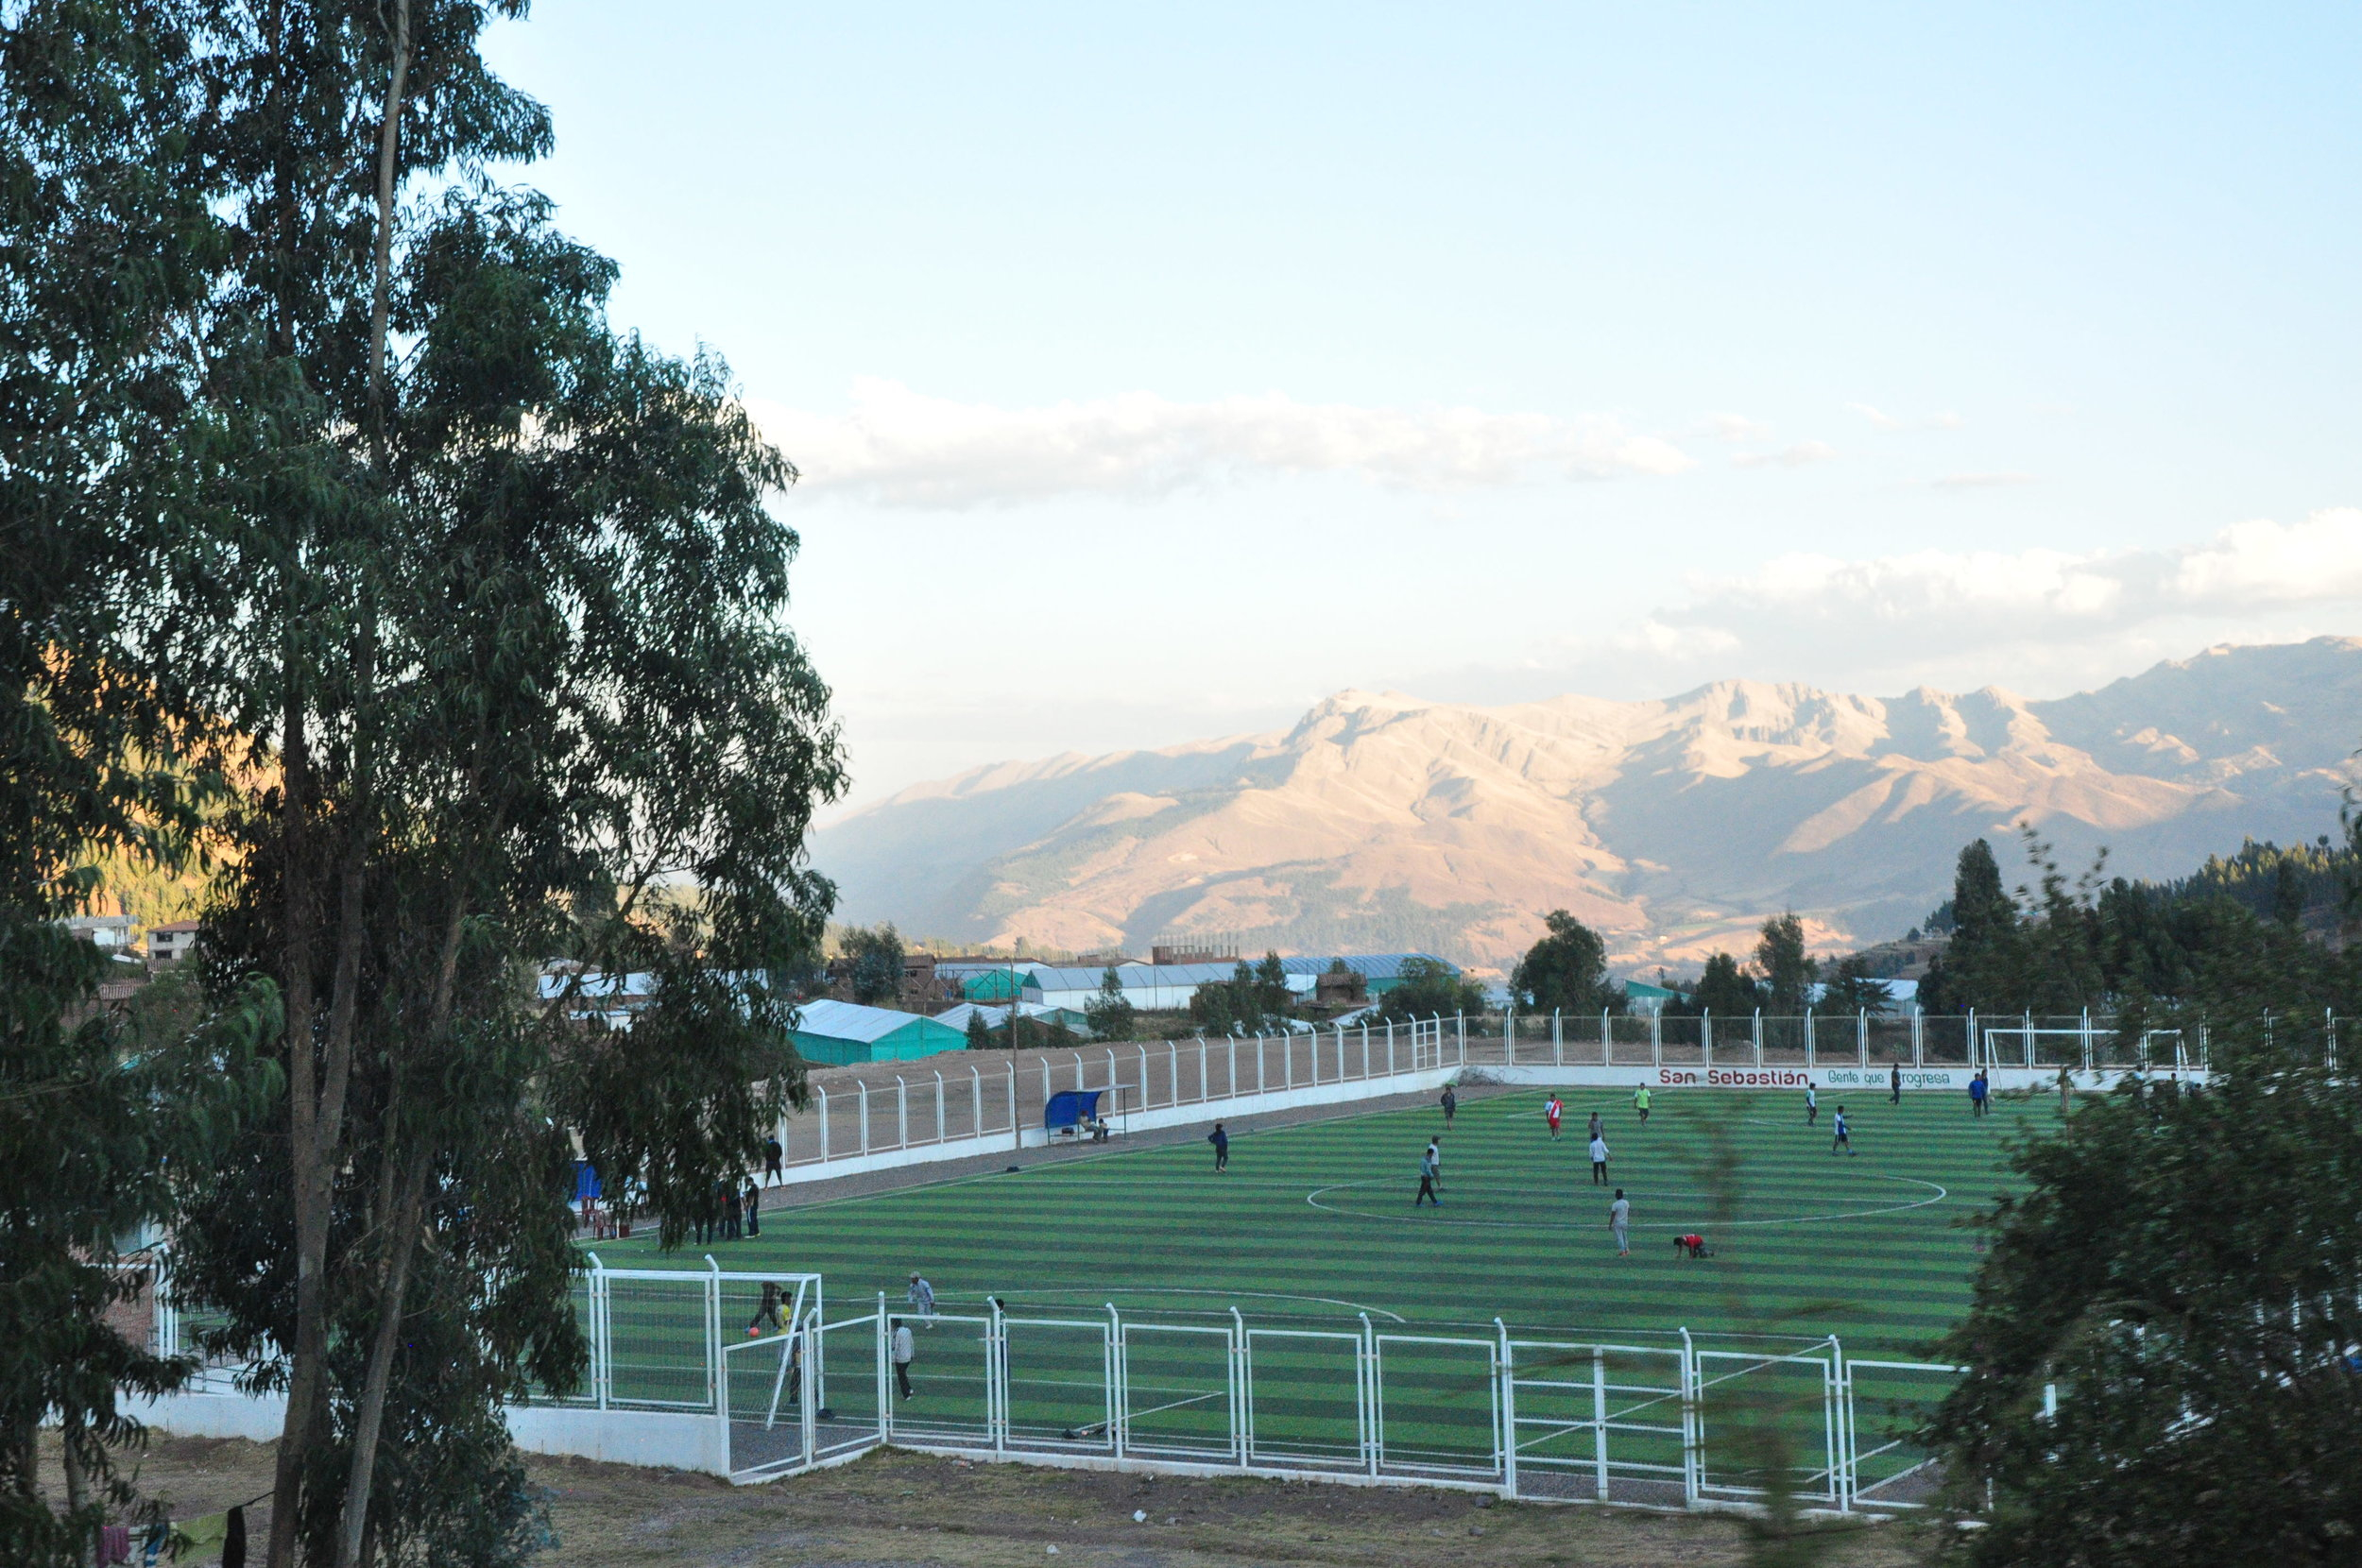 Soccer practice in Andes mountains